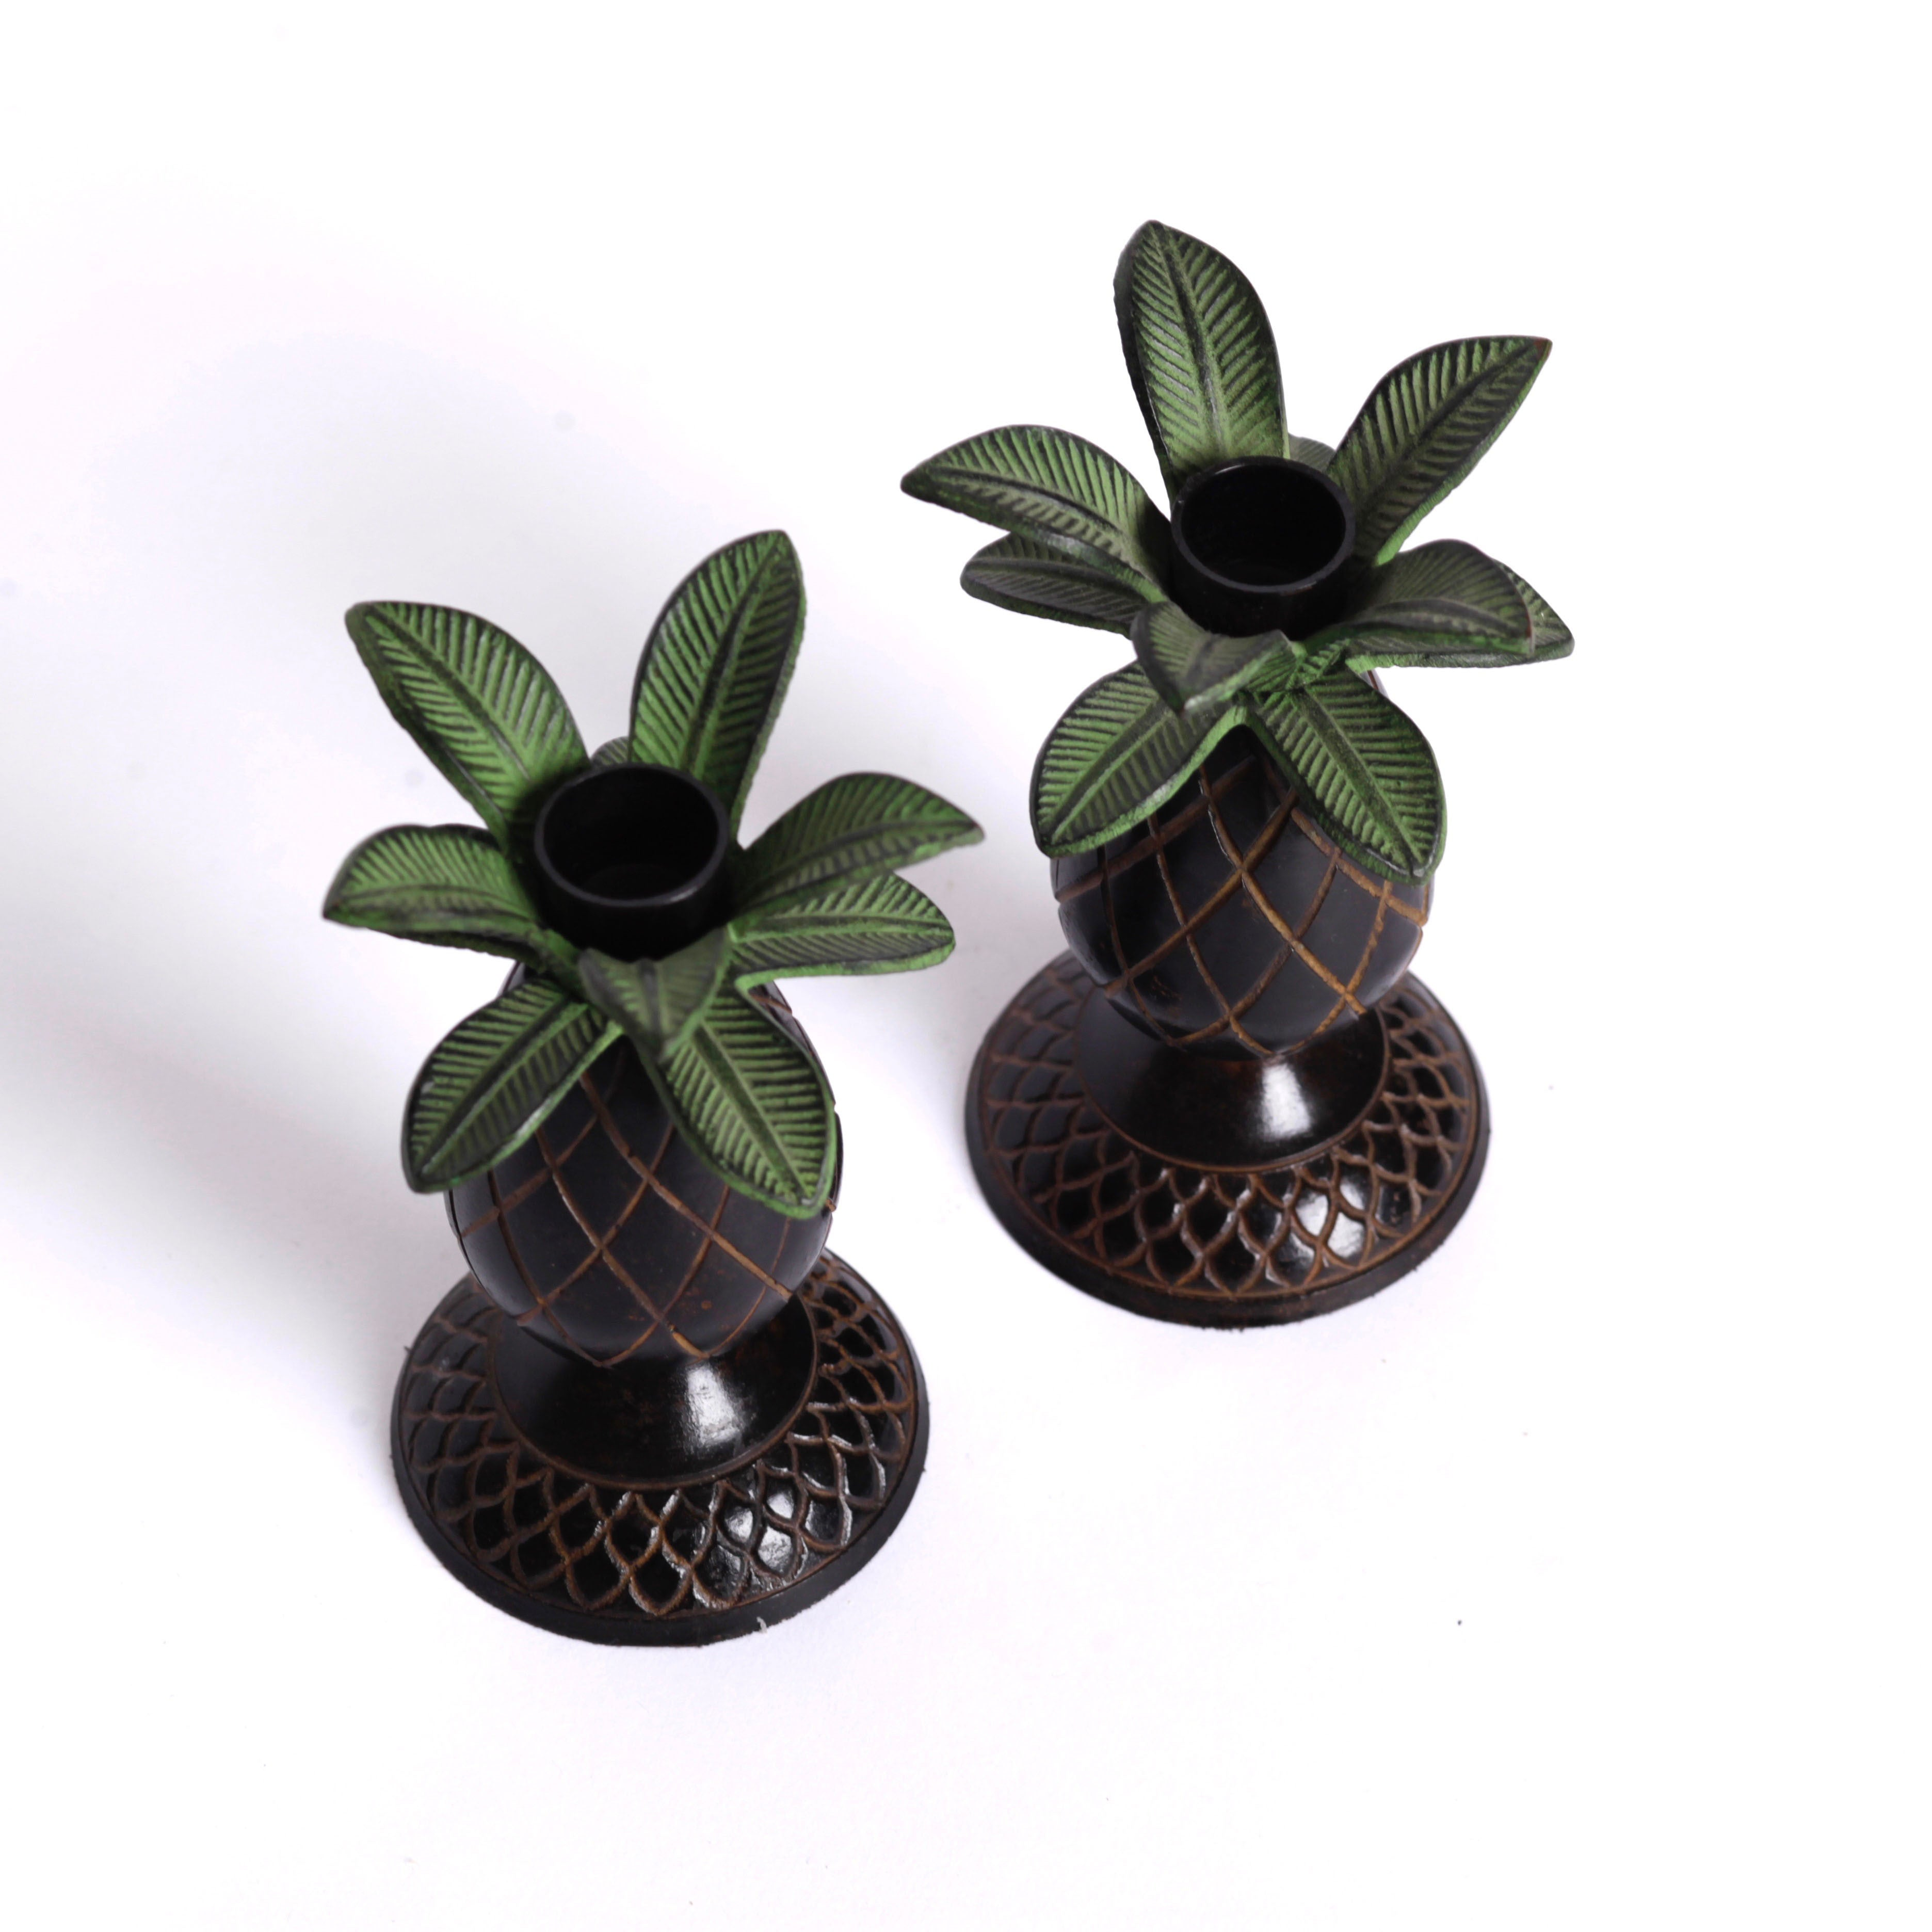 Pineapple Candle Holders (2)